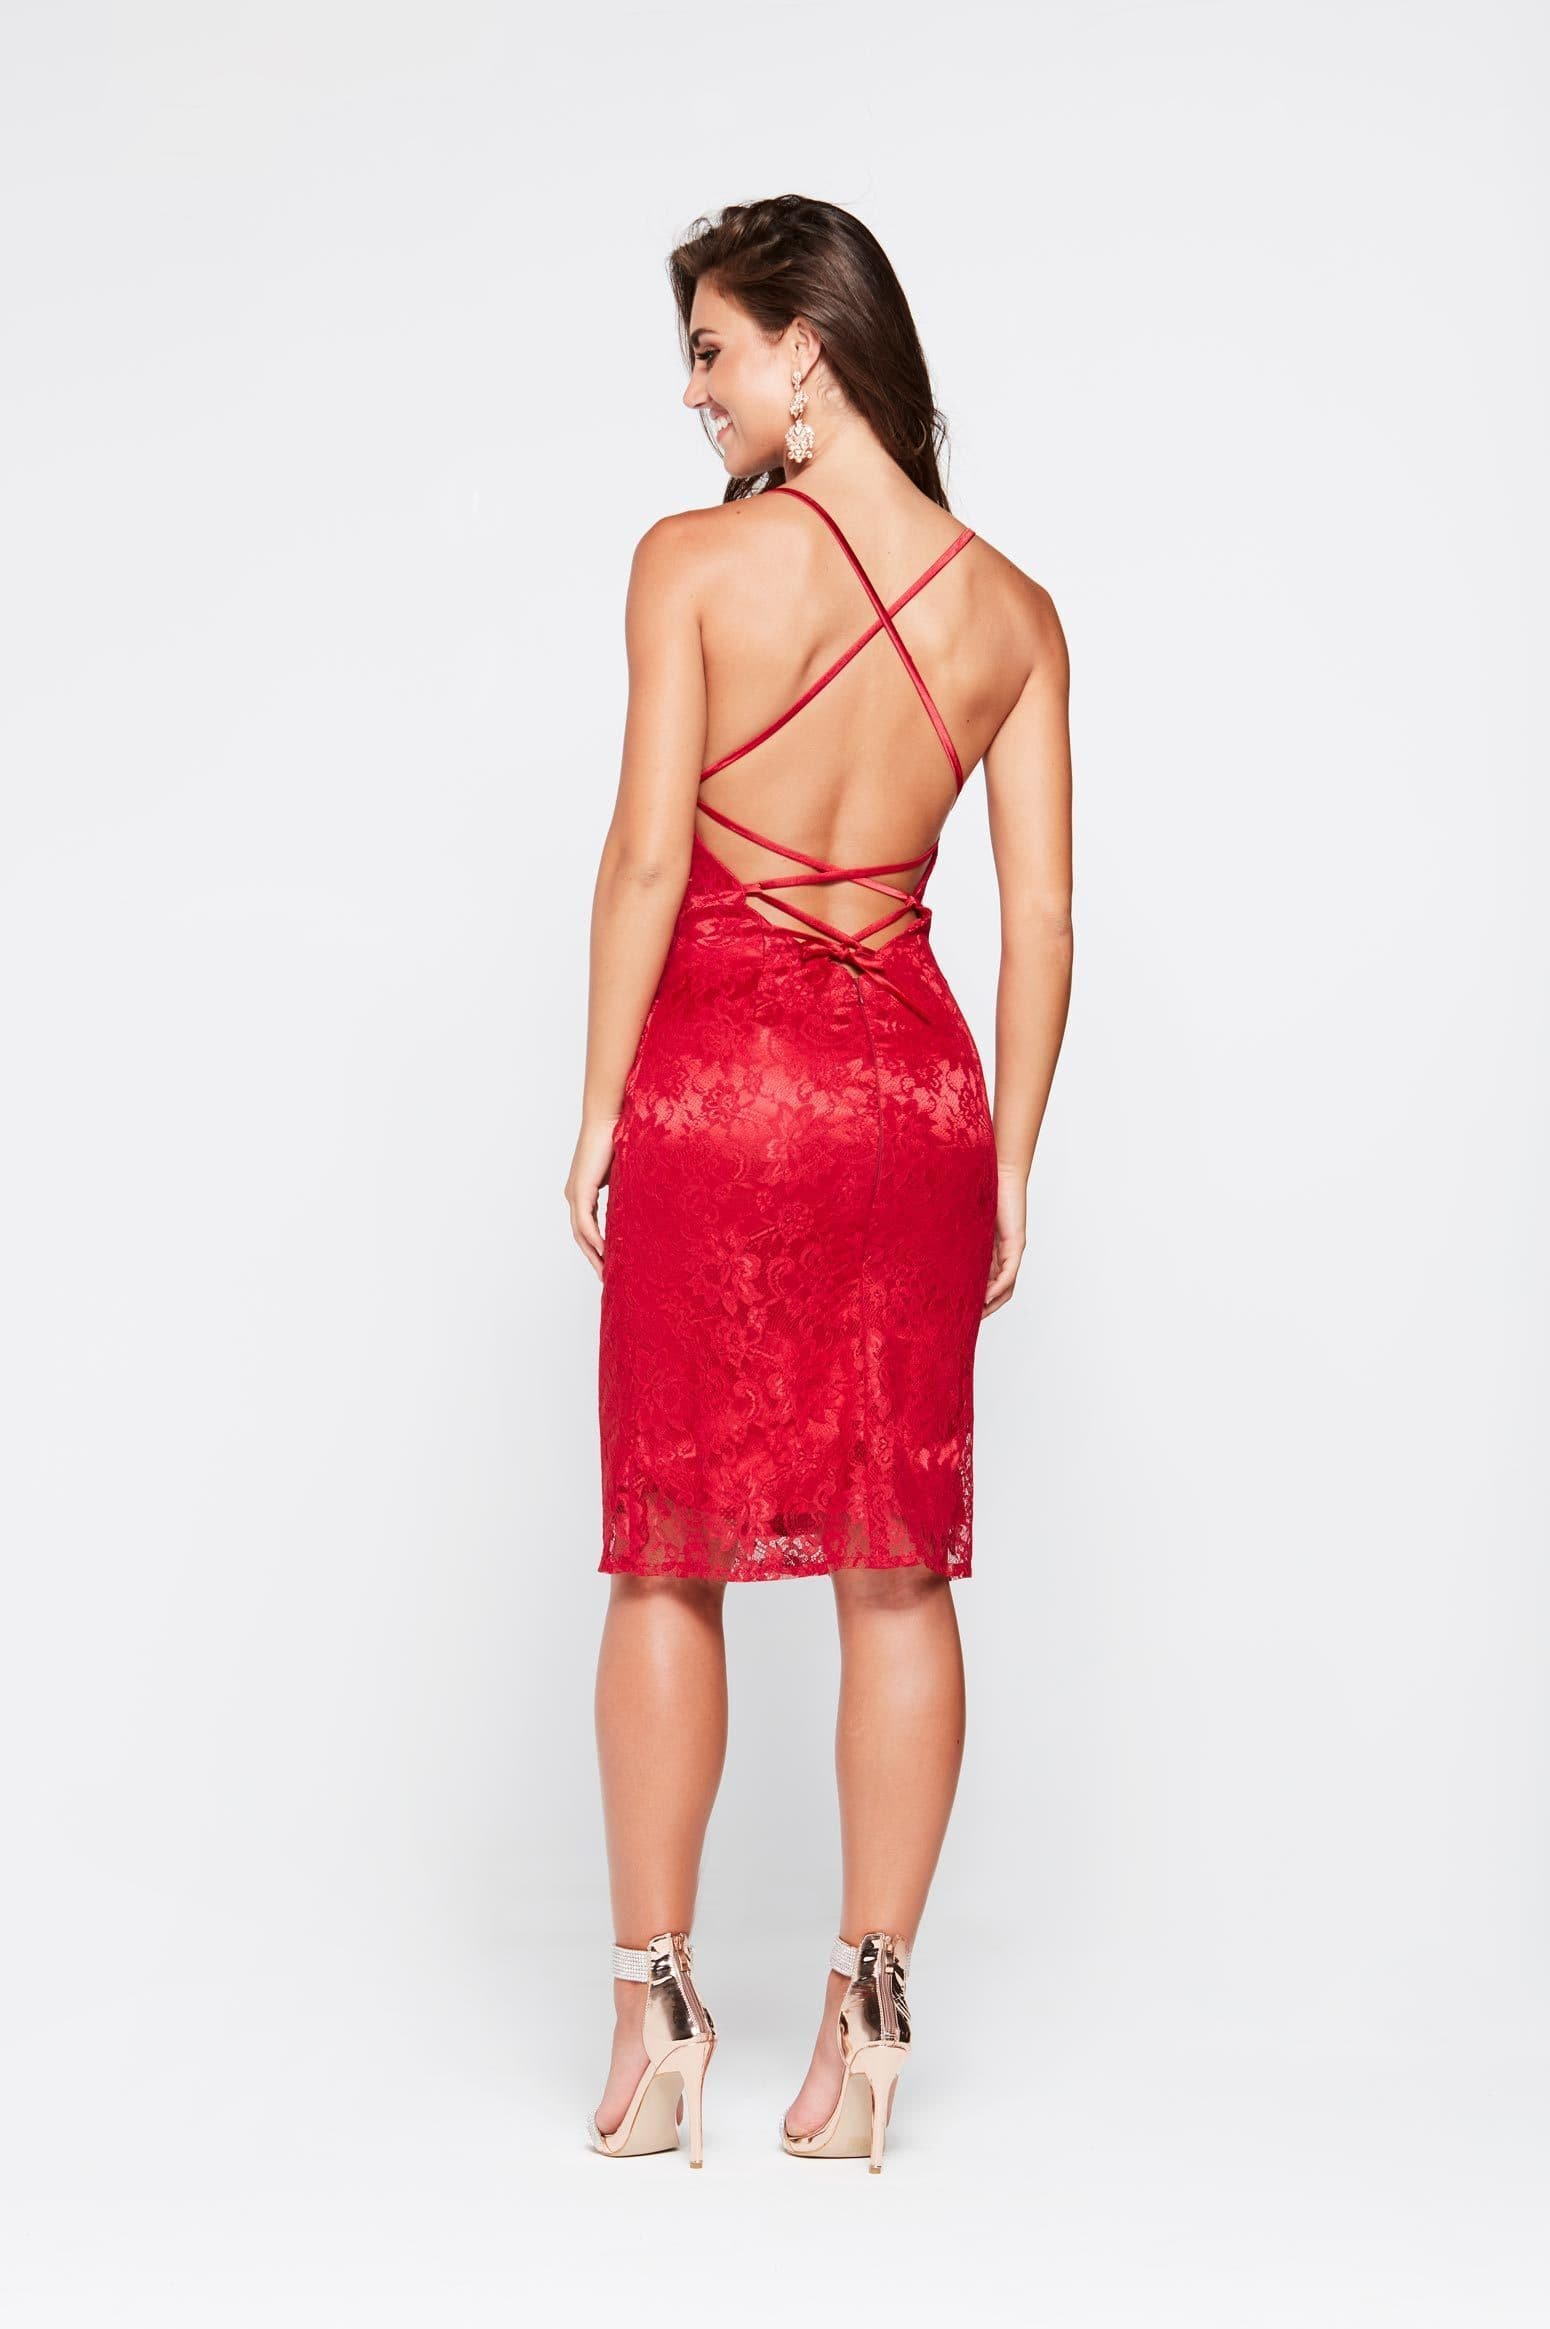 A&N Aisha- Deep Red Lace Cocktail Dress with A Line Skirt and Low Back